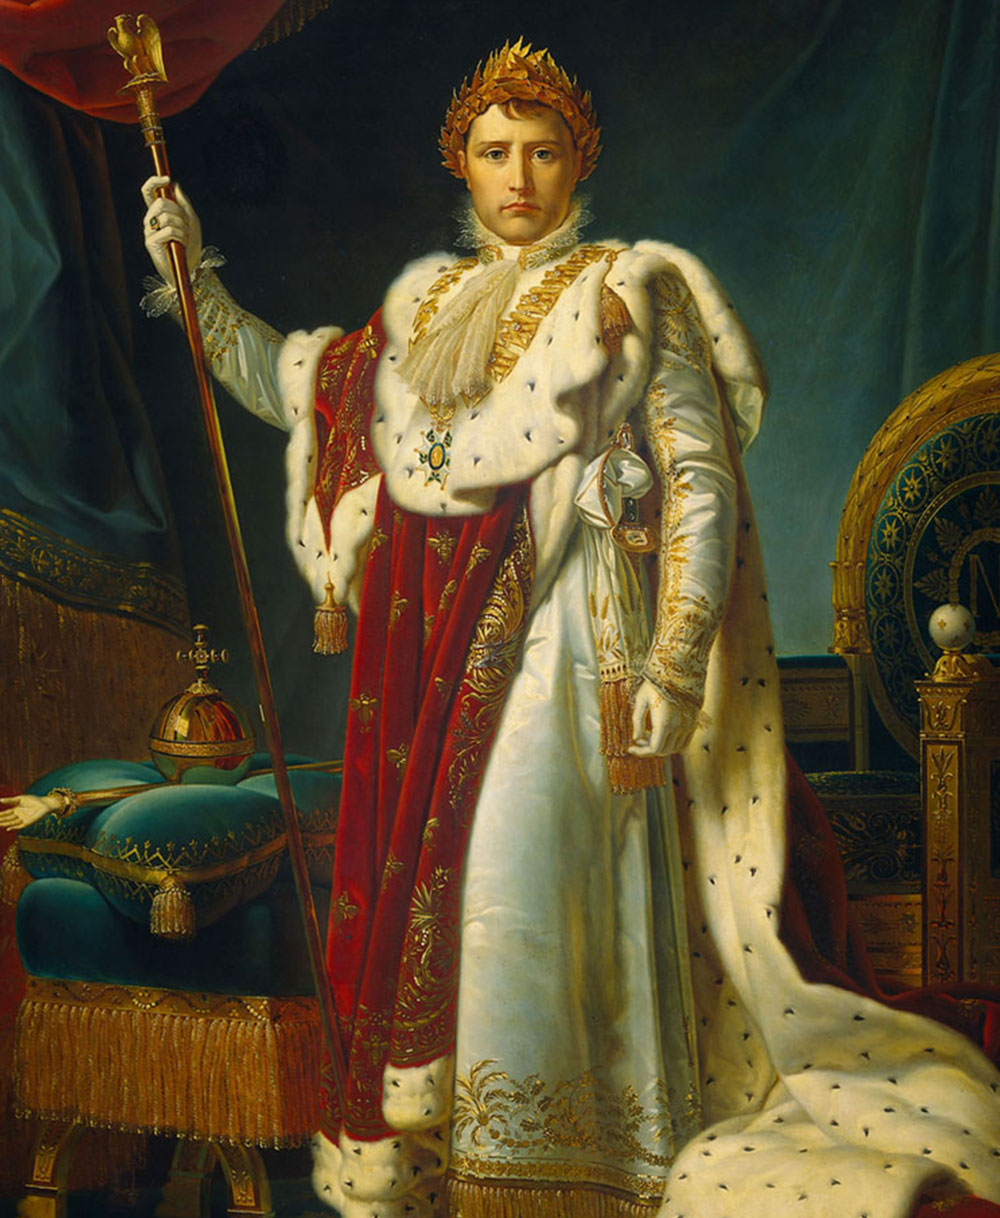 Portrait of Napoleon Bonaparte as Emperor. He is clothed in elaborate and lush red and white robes, and holds a golden scepter.